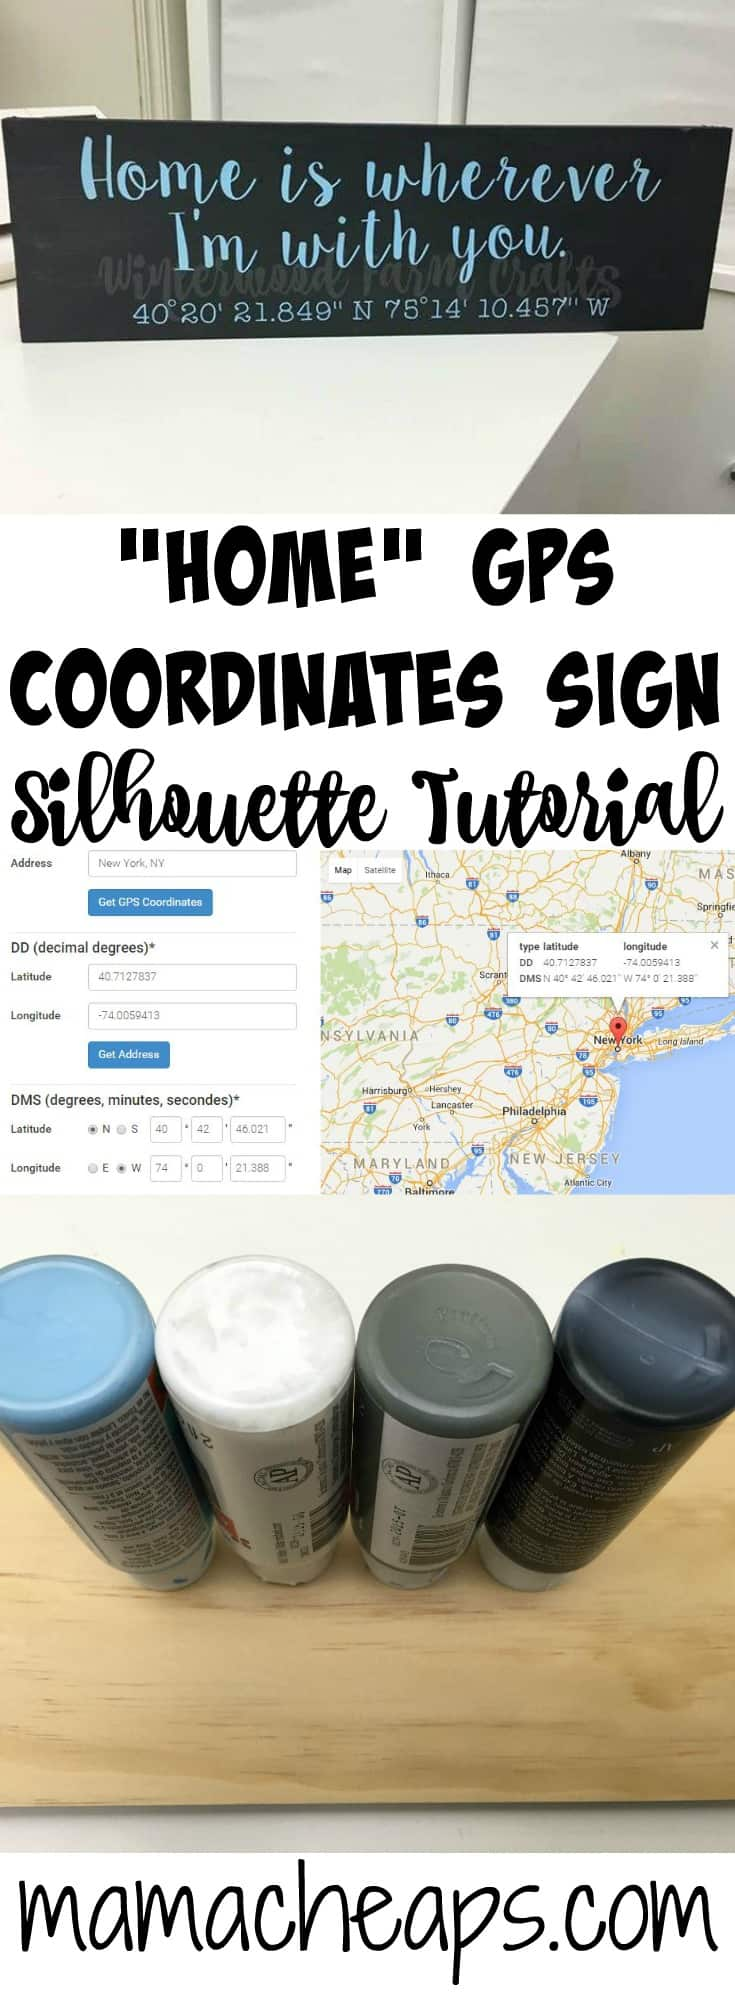 Home GPS Coordinates Sign Silhouette Tutorial